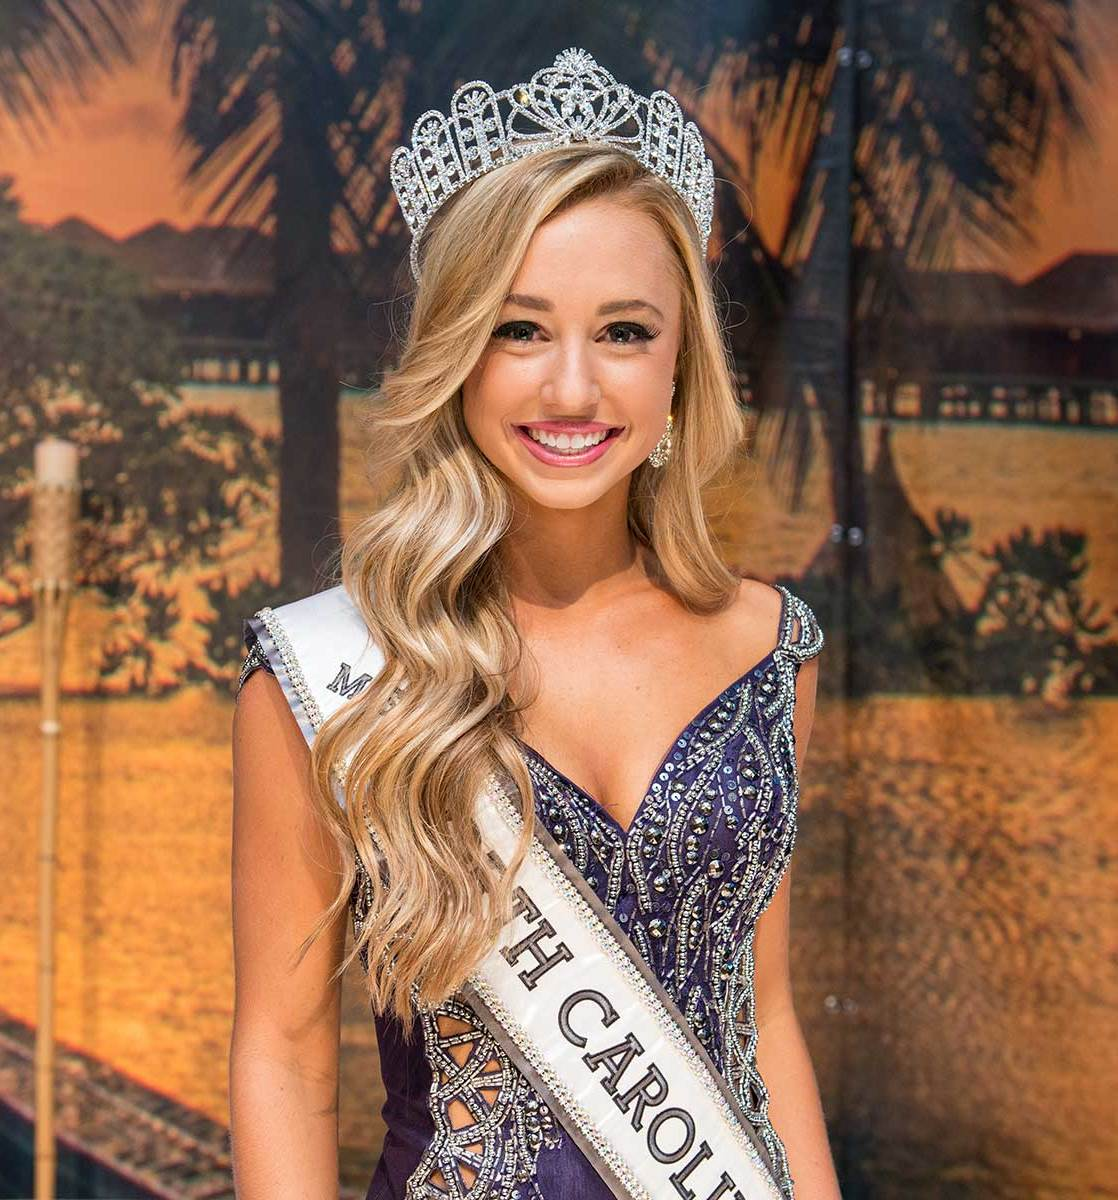 Miss north carolina teen